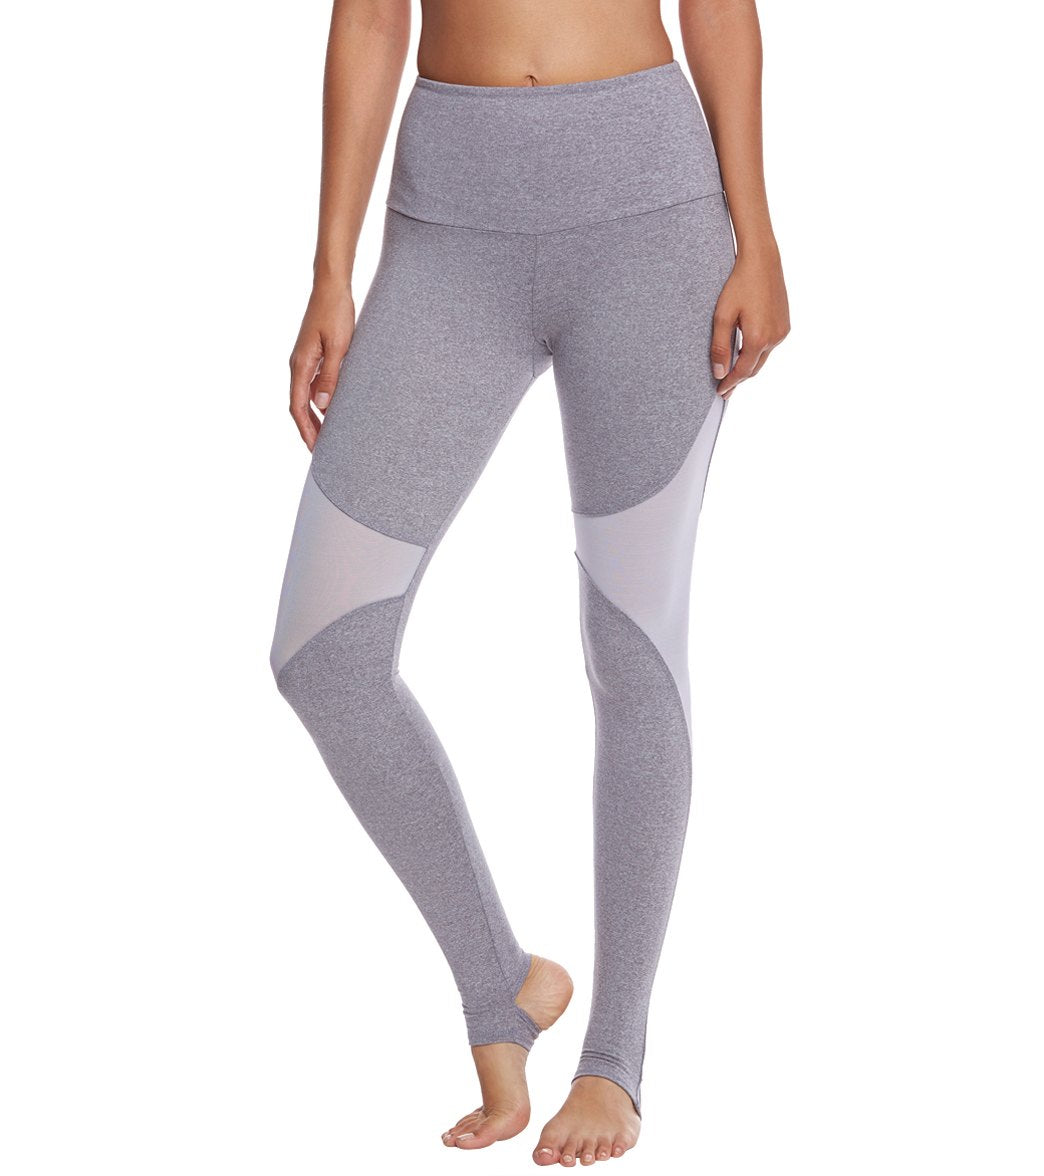 8249bc359084d8 Onzie High Waisted Stirrup Yoga Leggings at YogaOutlet.com - Free Shipping